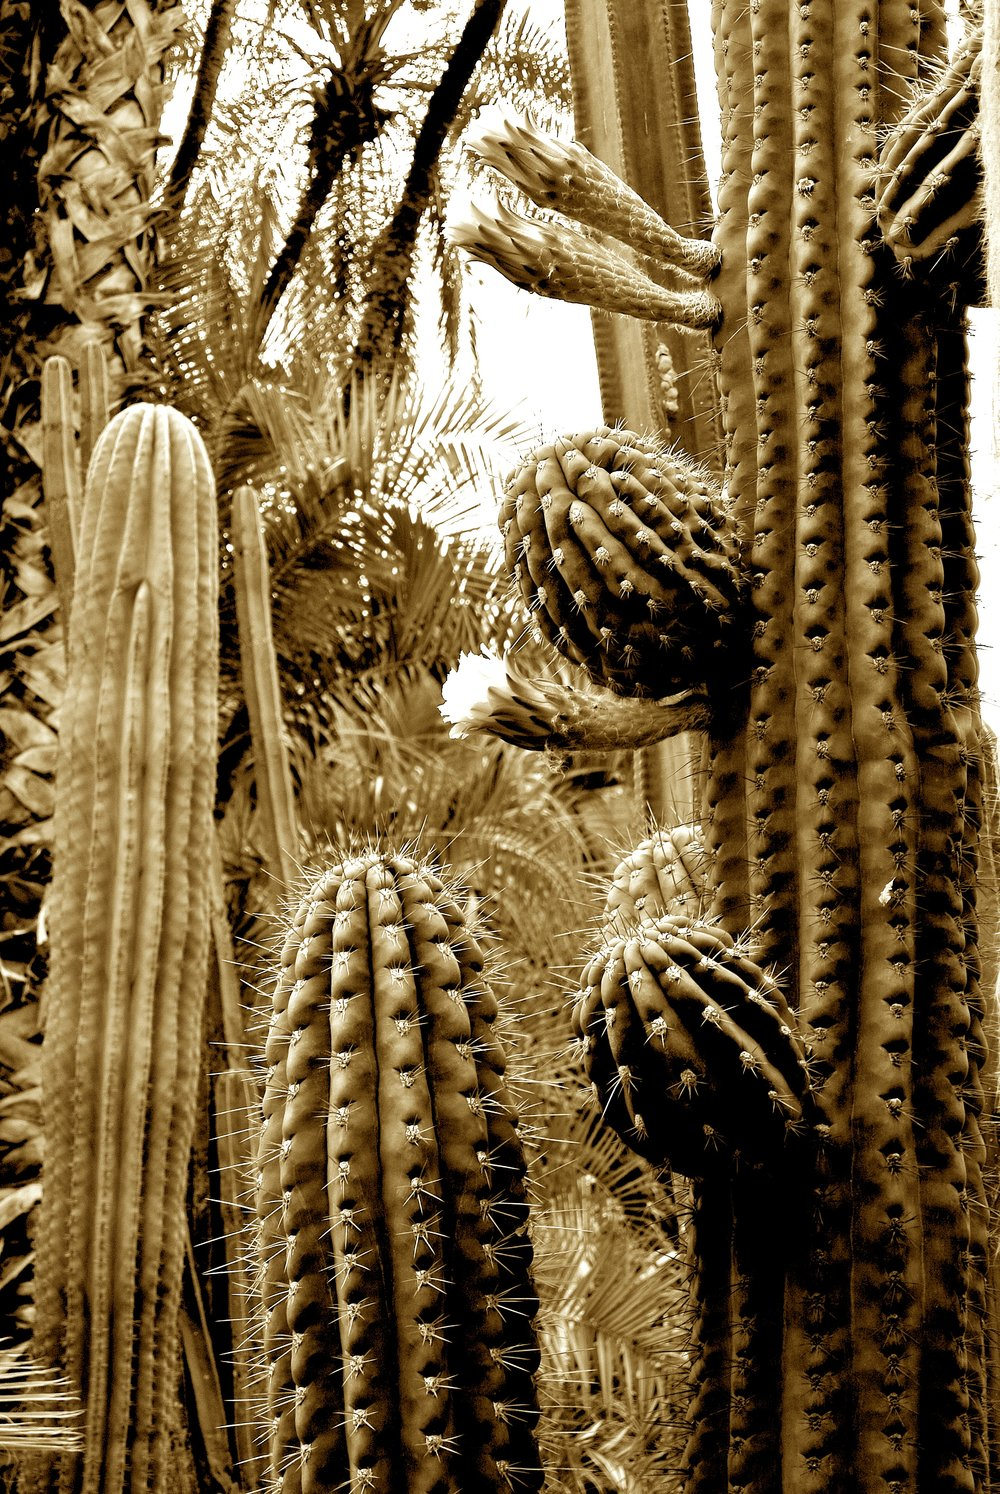 Drought-tolerant cacti make up the majority of plants at the Majorelle Garden